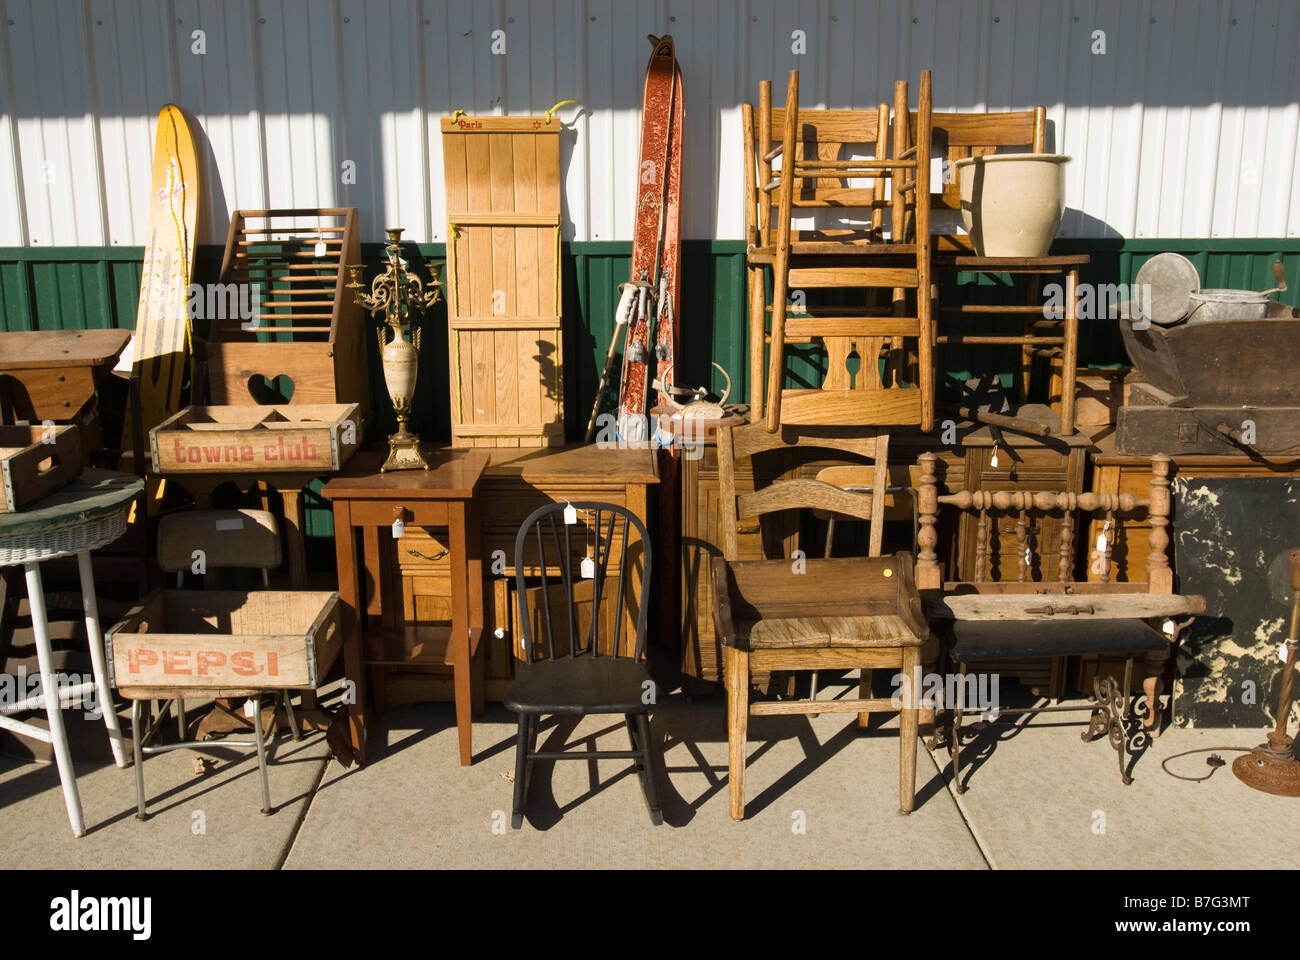 Old furniture for sale at an antique mall in Michigan, USA. Stock Photo